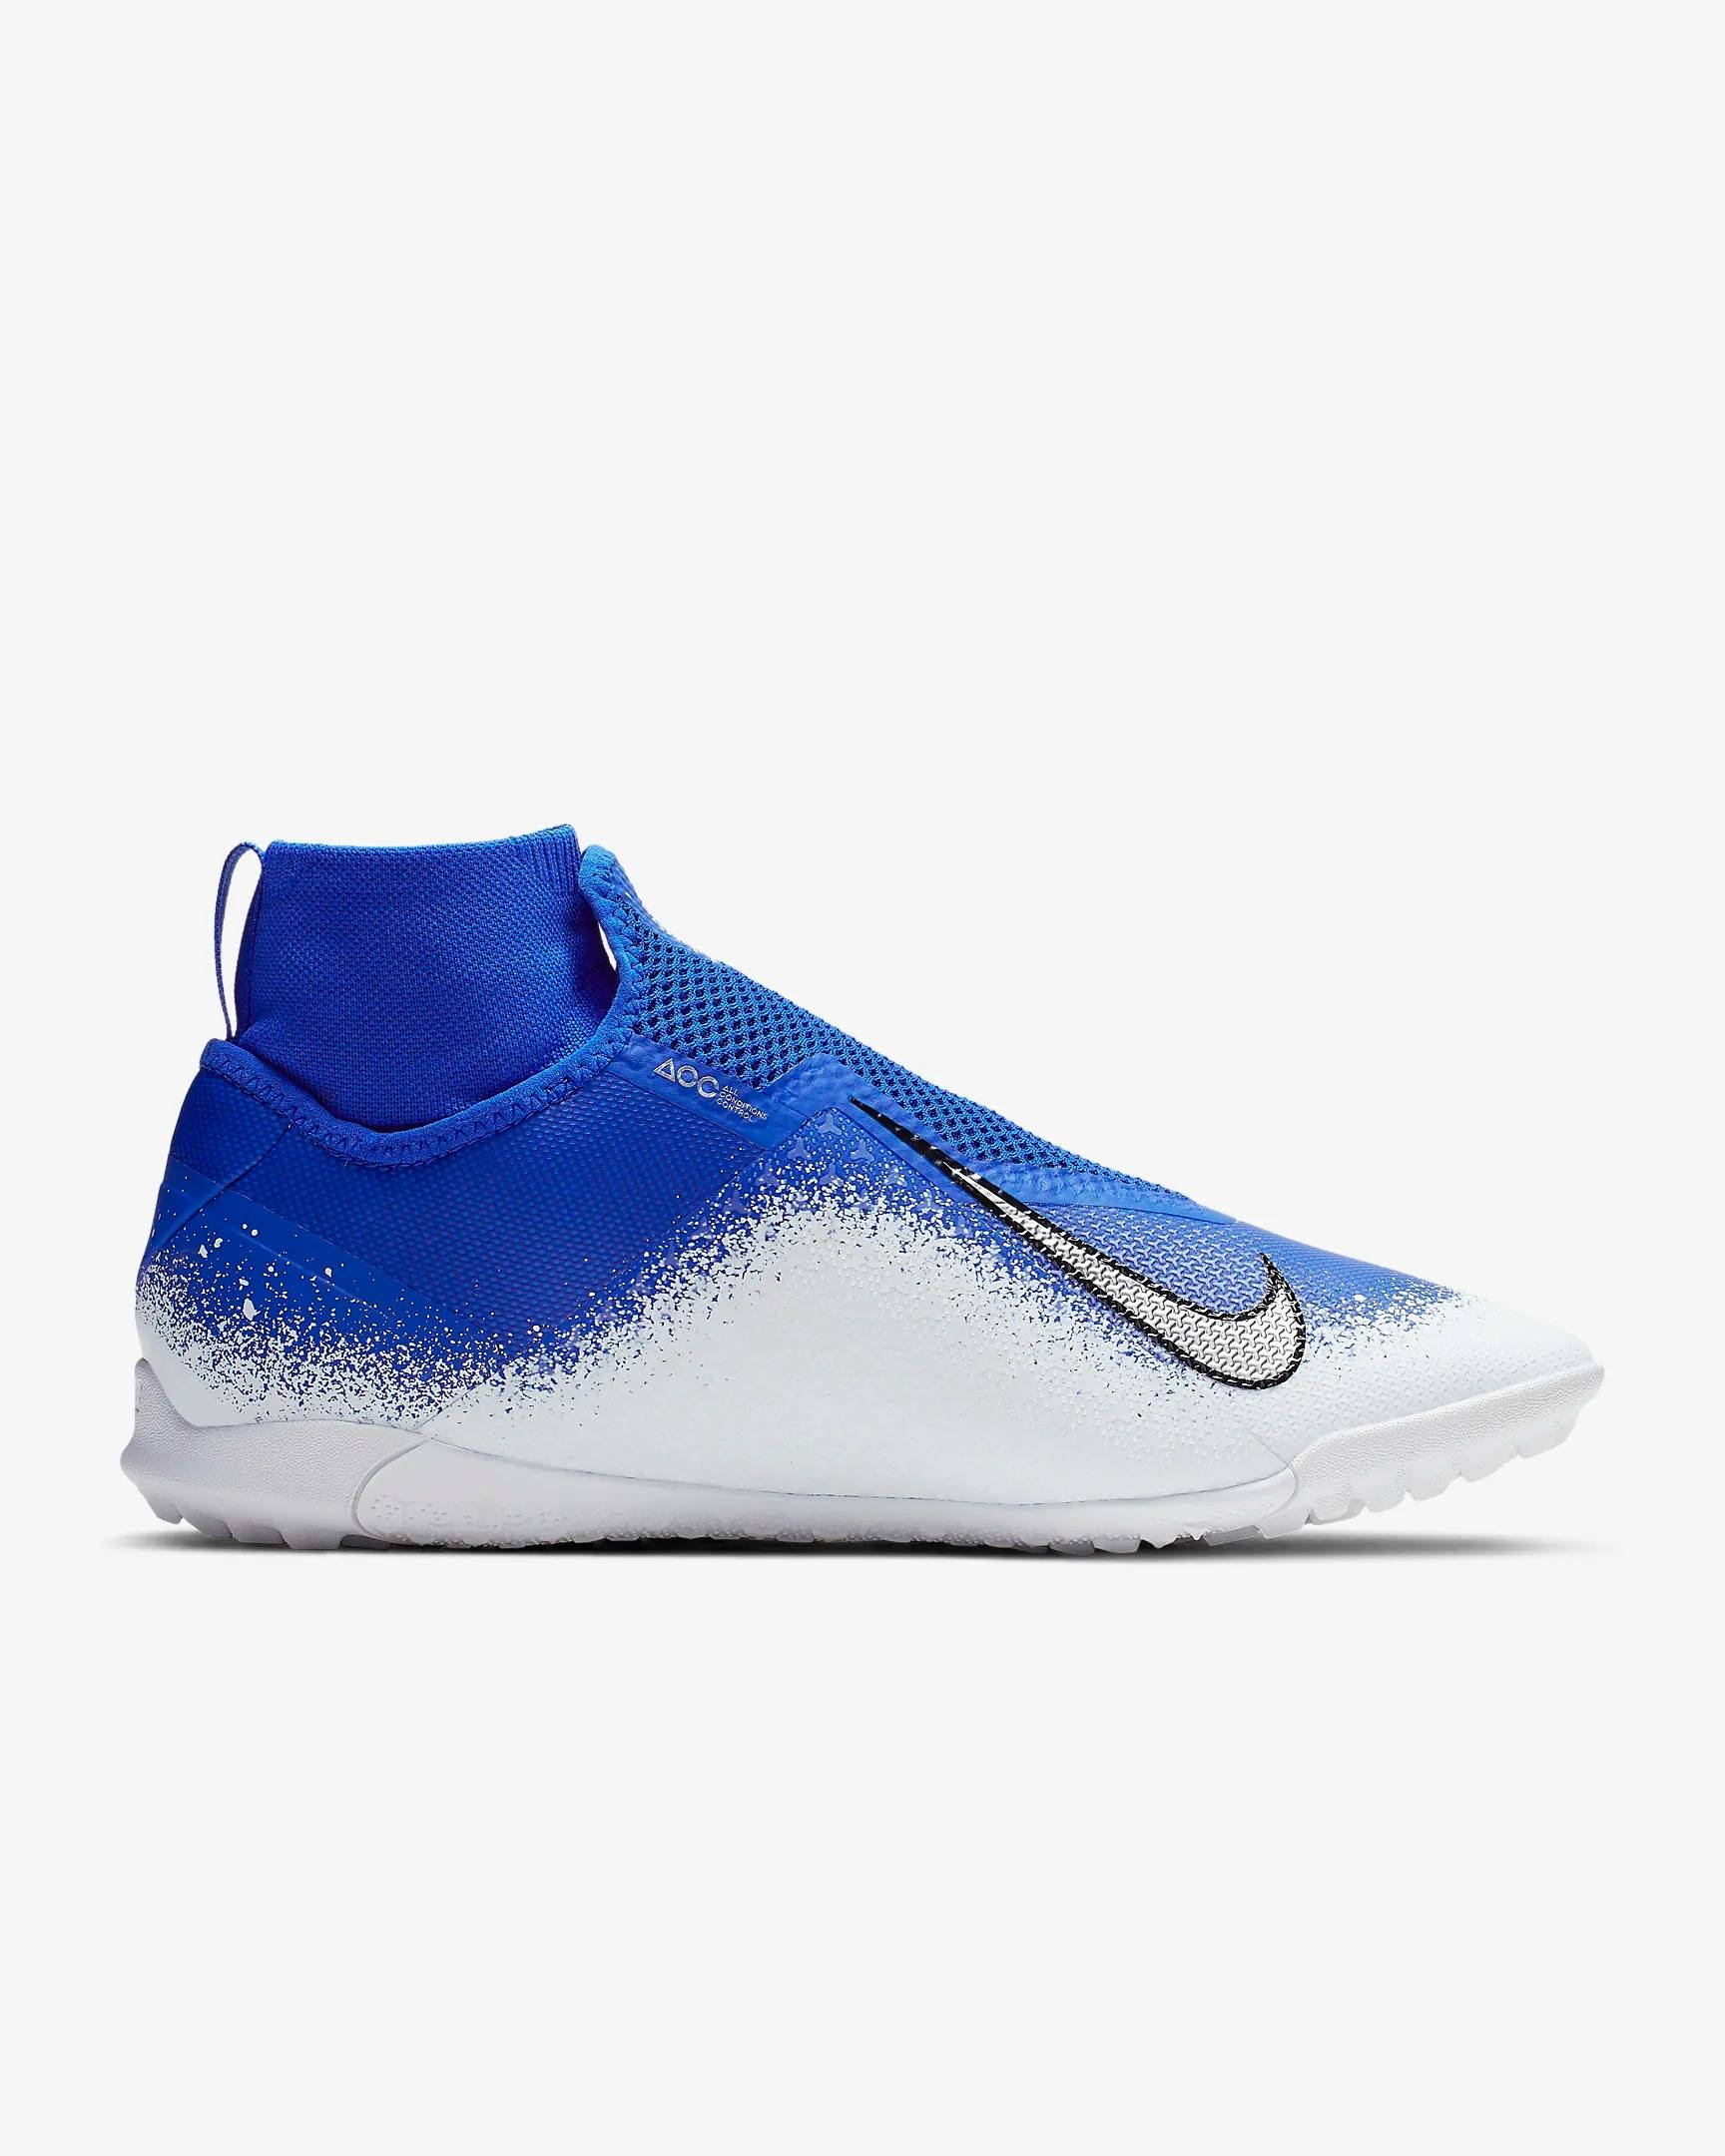 Футбольные шиповки Nike React Phantom Vsn Pro DF TF AO3277-410 SR (фото 2)